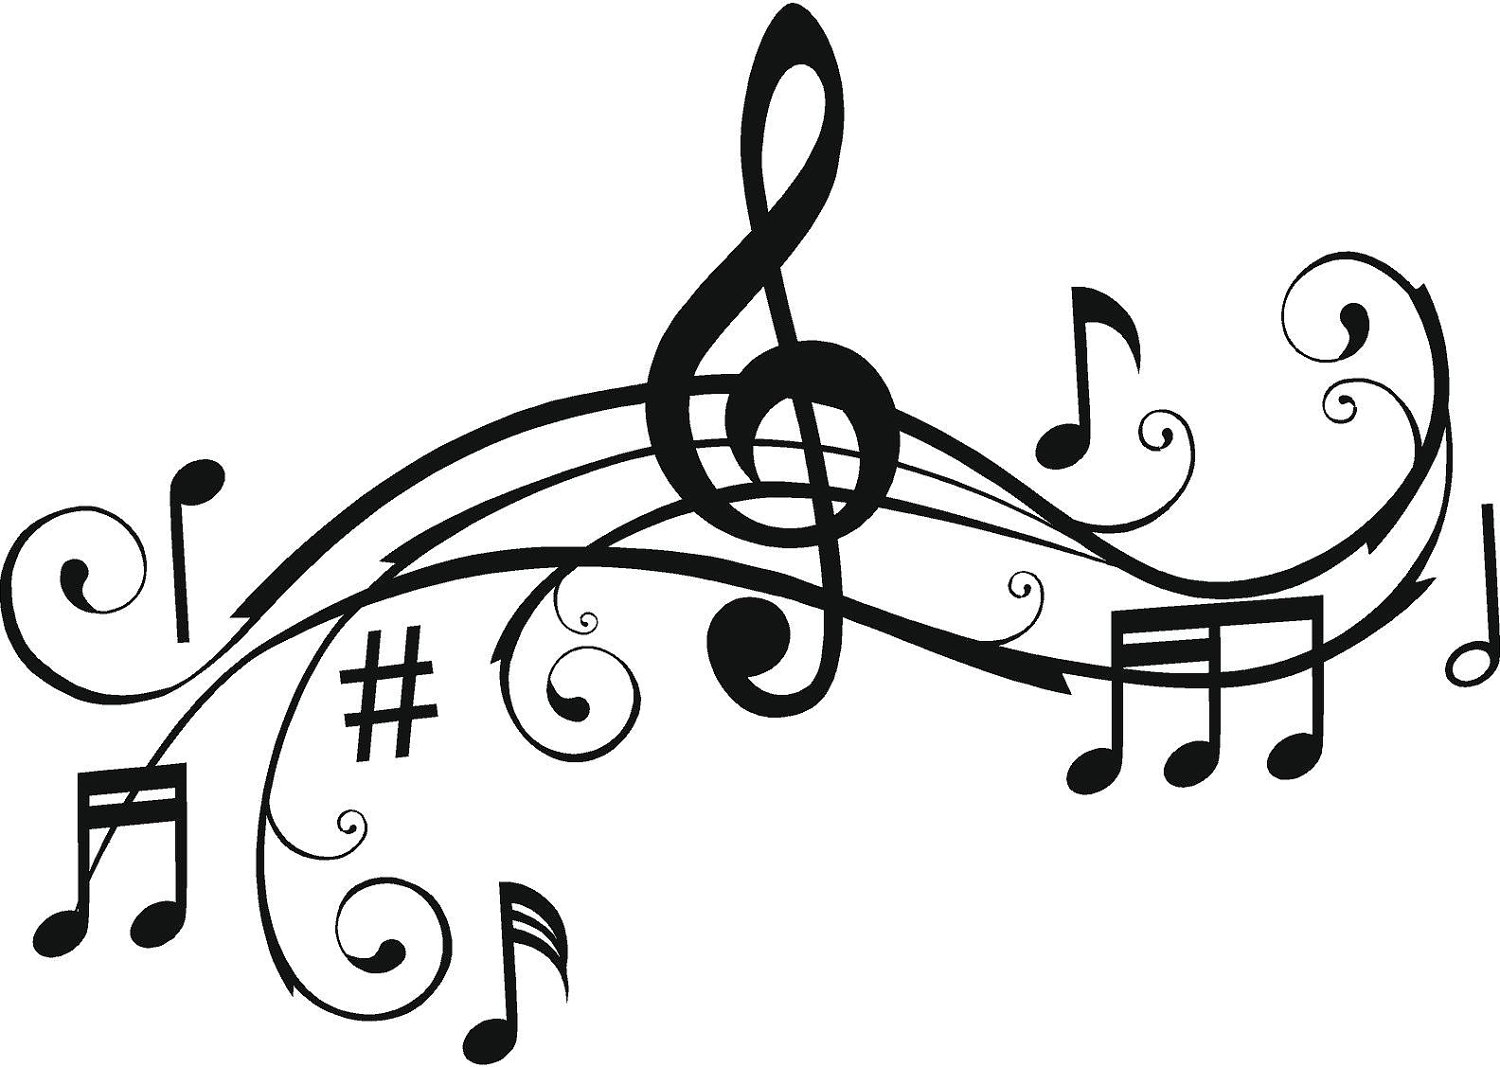 Coloring Pages ~ Music Notes Coloring Pages Exclusive Symbols - Free Printable Pictures Of Music Notes